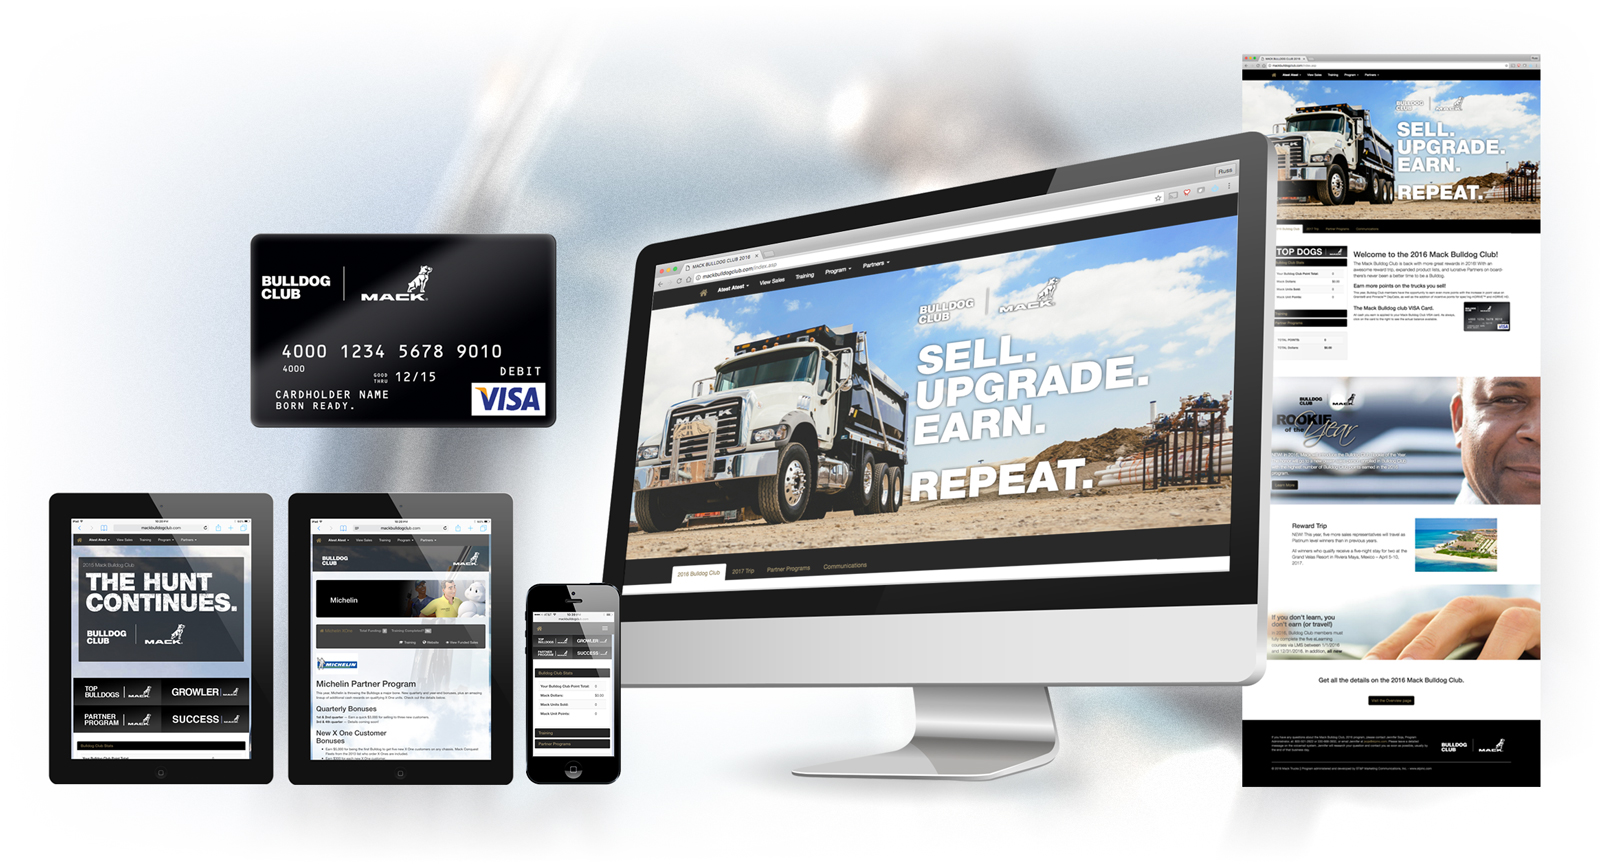 Mack Truck Sales Partner and Employee Incentive Program